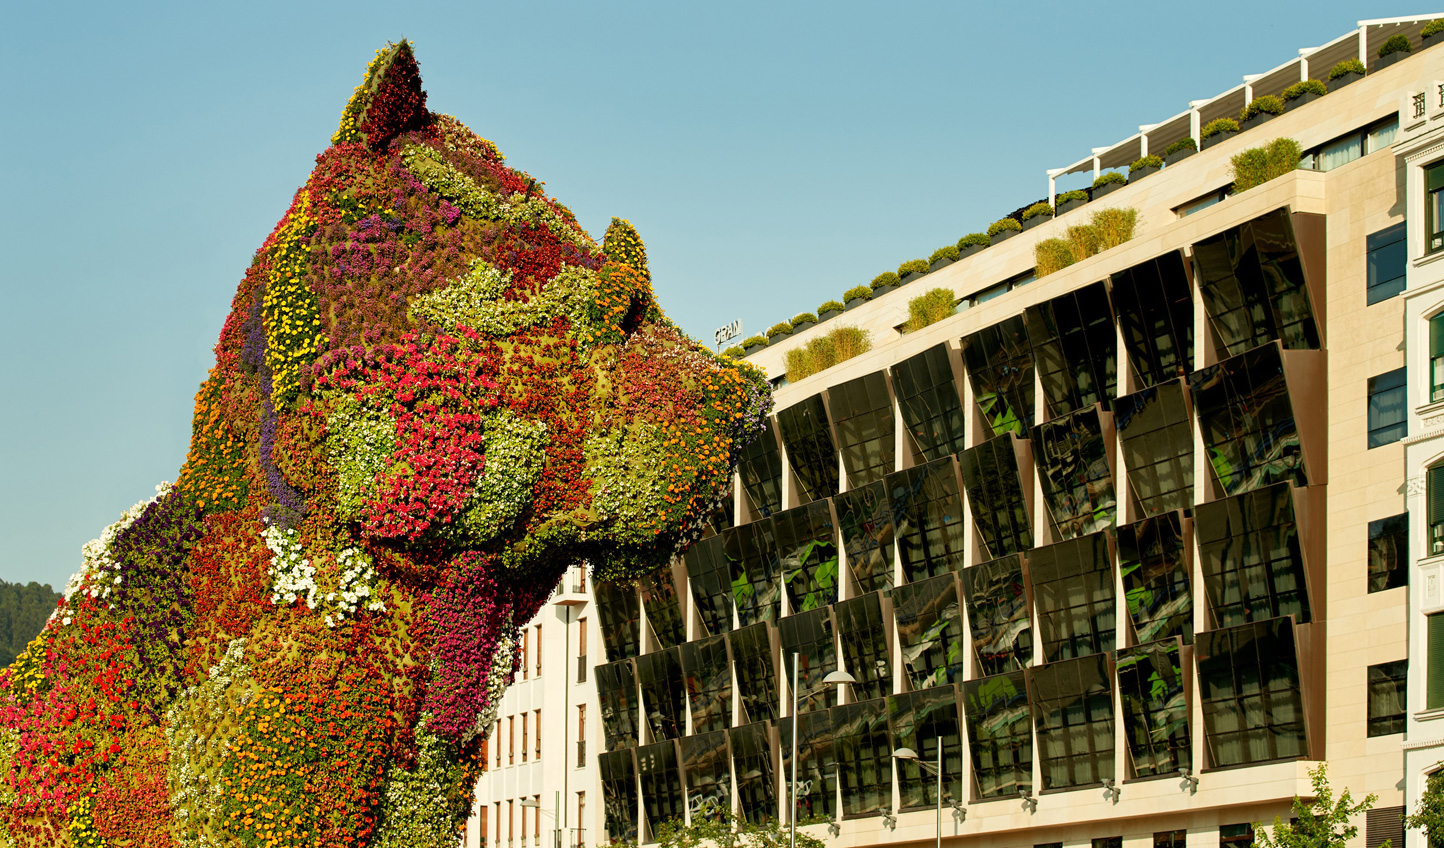 Gran Hotel Domine is in prime location opposite the Guggenheim and Bilbao's famous flower dog